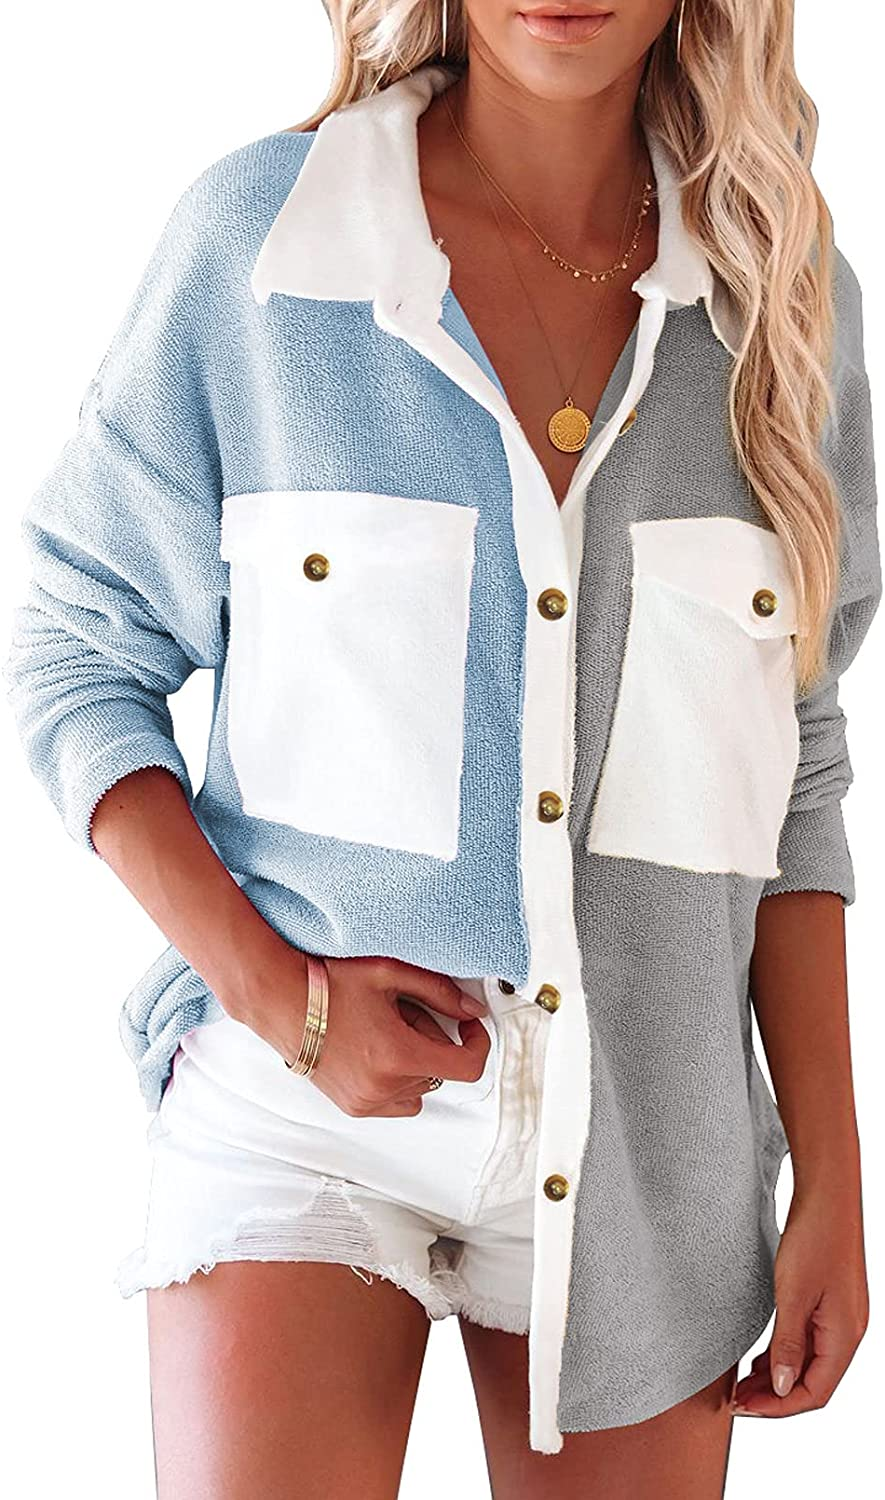 Rosfancy Women's Casual Long Sleeve Button Down Shirts Color Block Blouses Tops